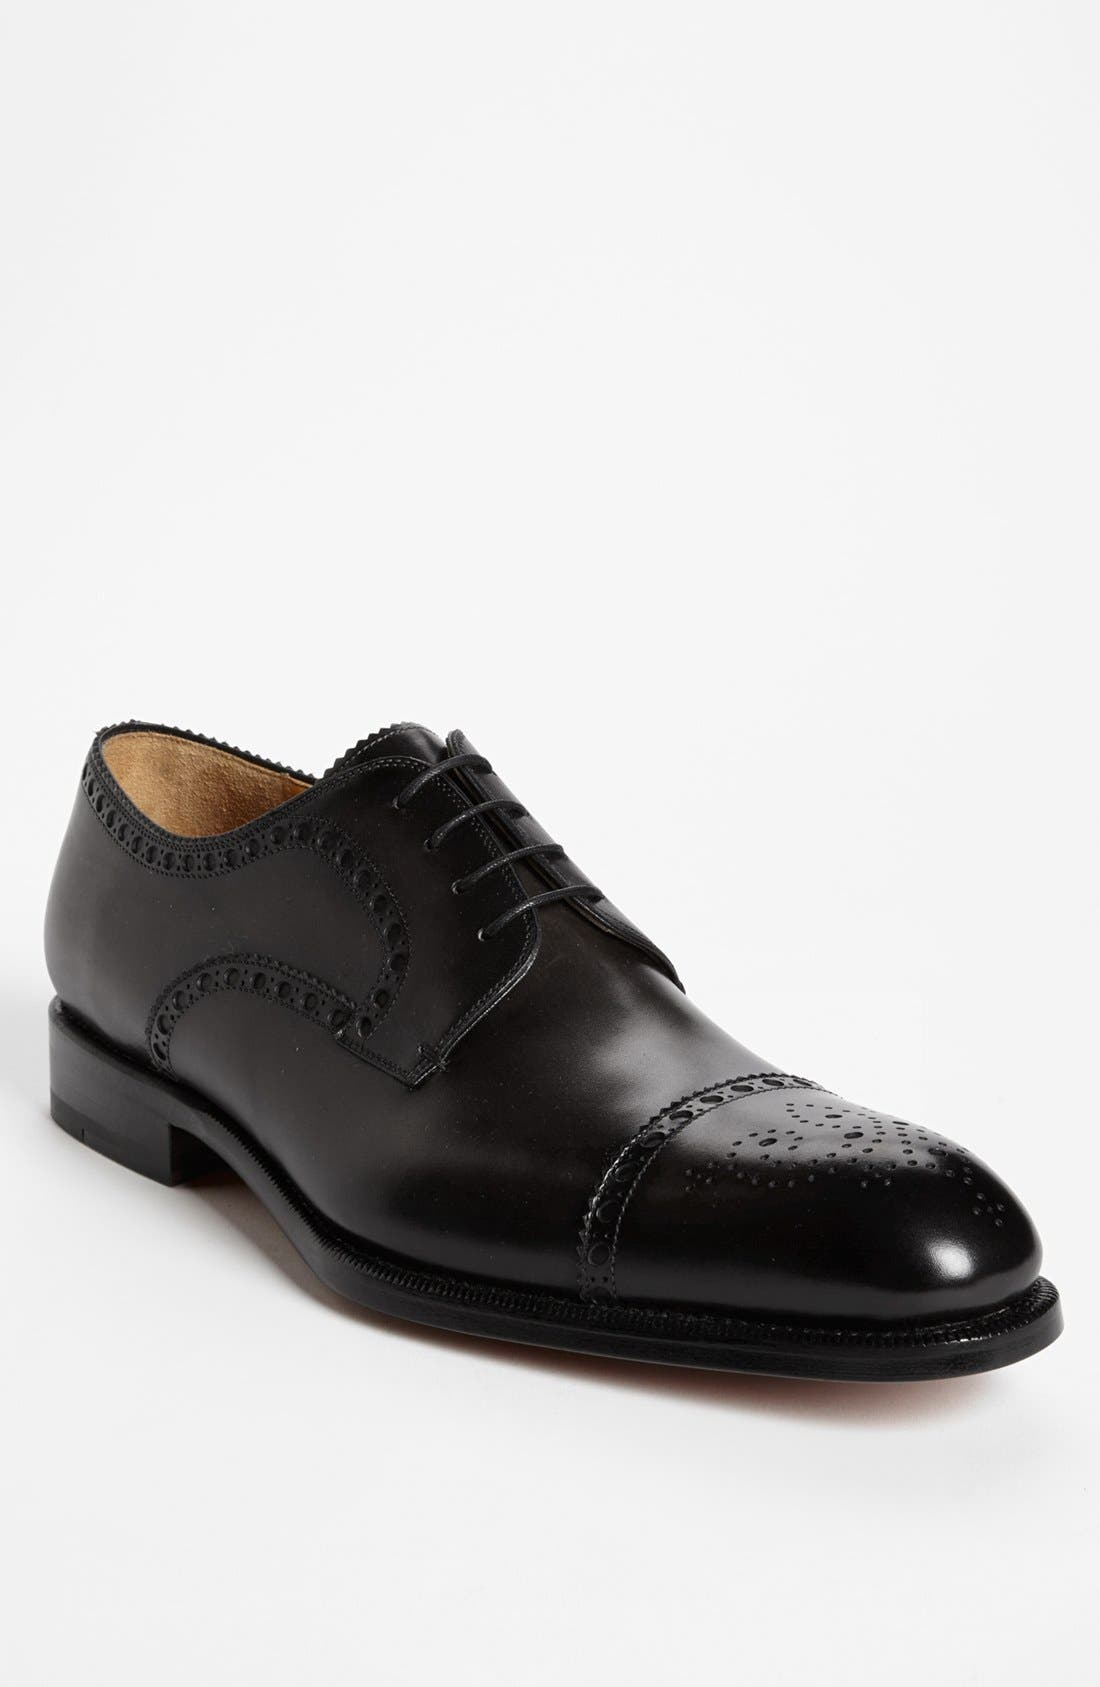 Alternate Image 1 Selected - Magnanni 'Alba' Cap Toe Derby (Men) (Online Only)